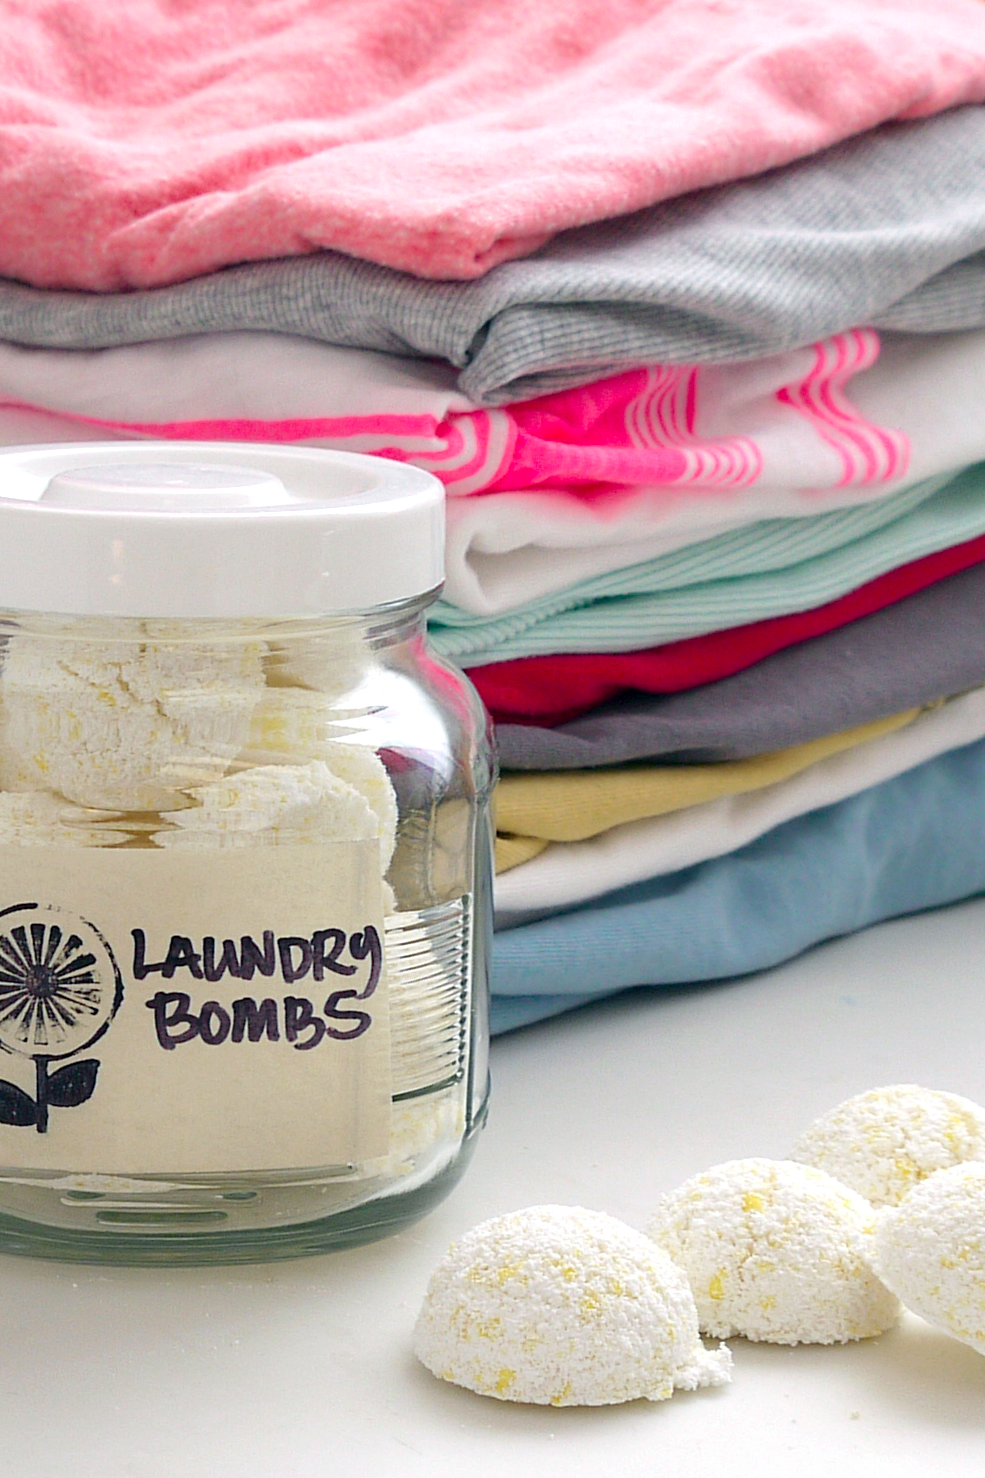 Here's a homemade laundry bomb that does it all. You can pick up the basic ingredients at your local grocery store for a few dollars, making these little helpers seriously budget-friendly.